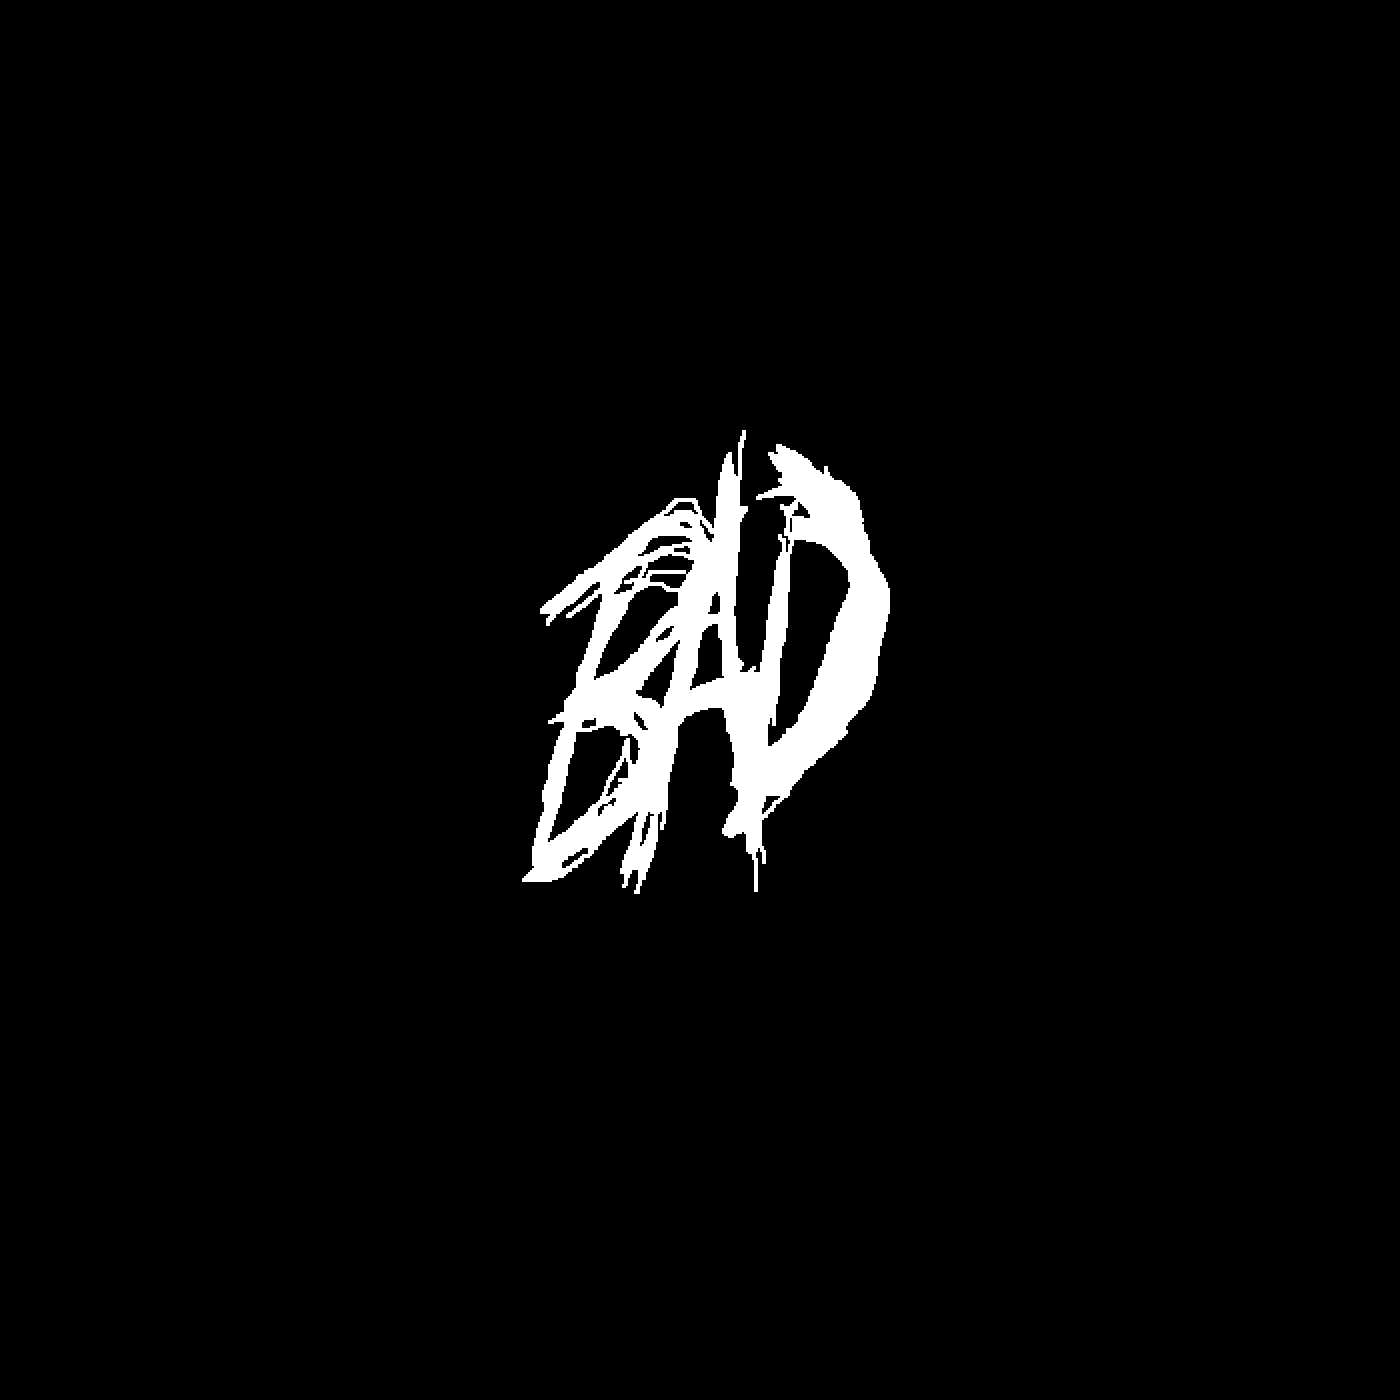 Bad by Xxxtentaction